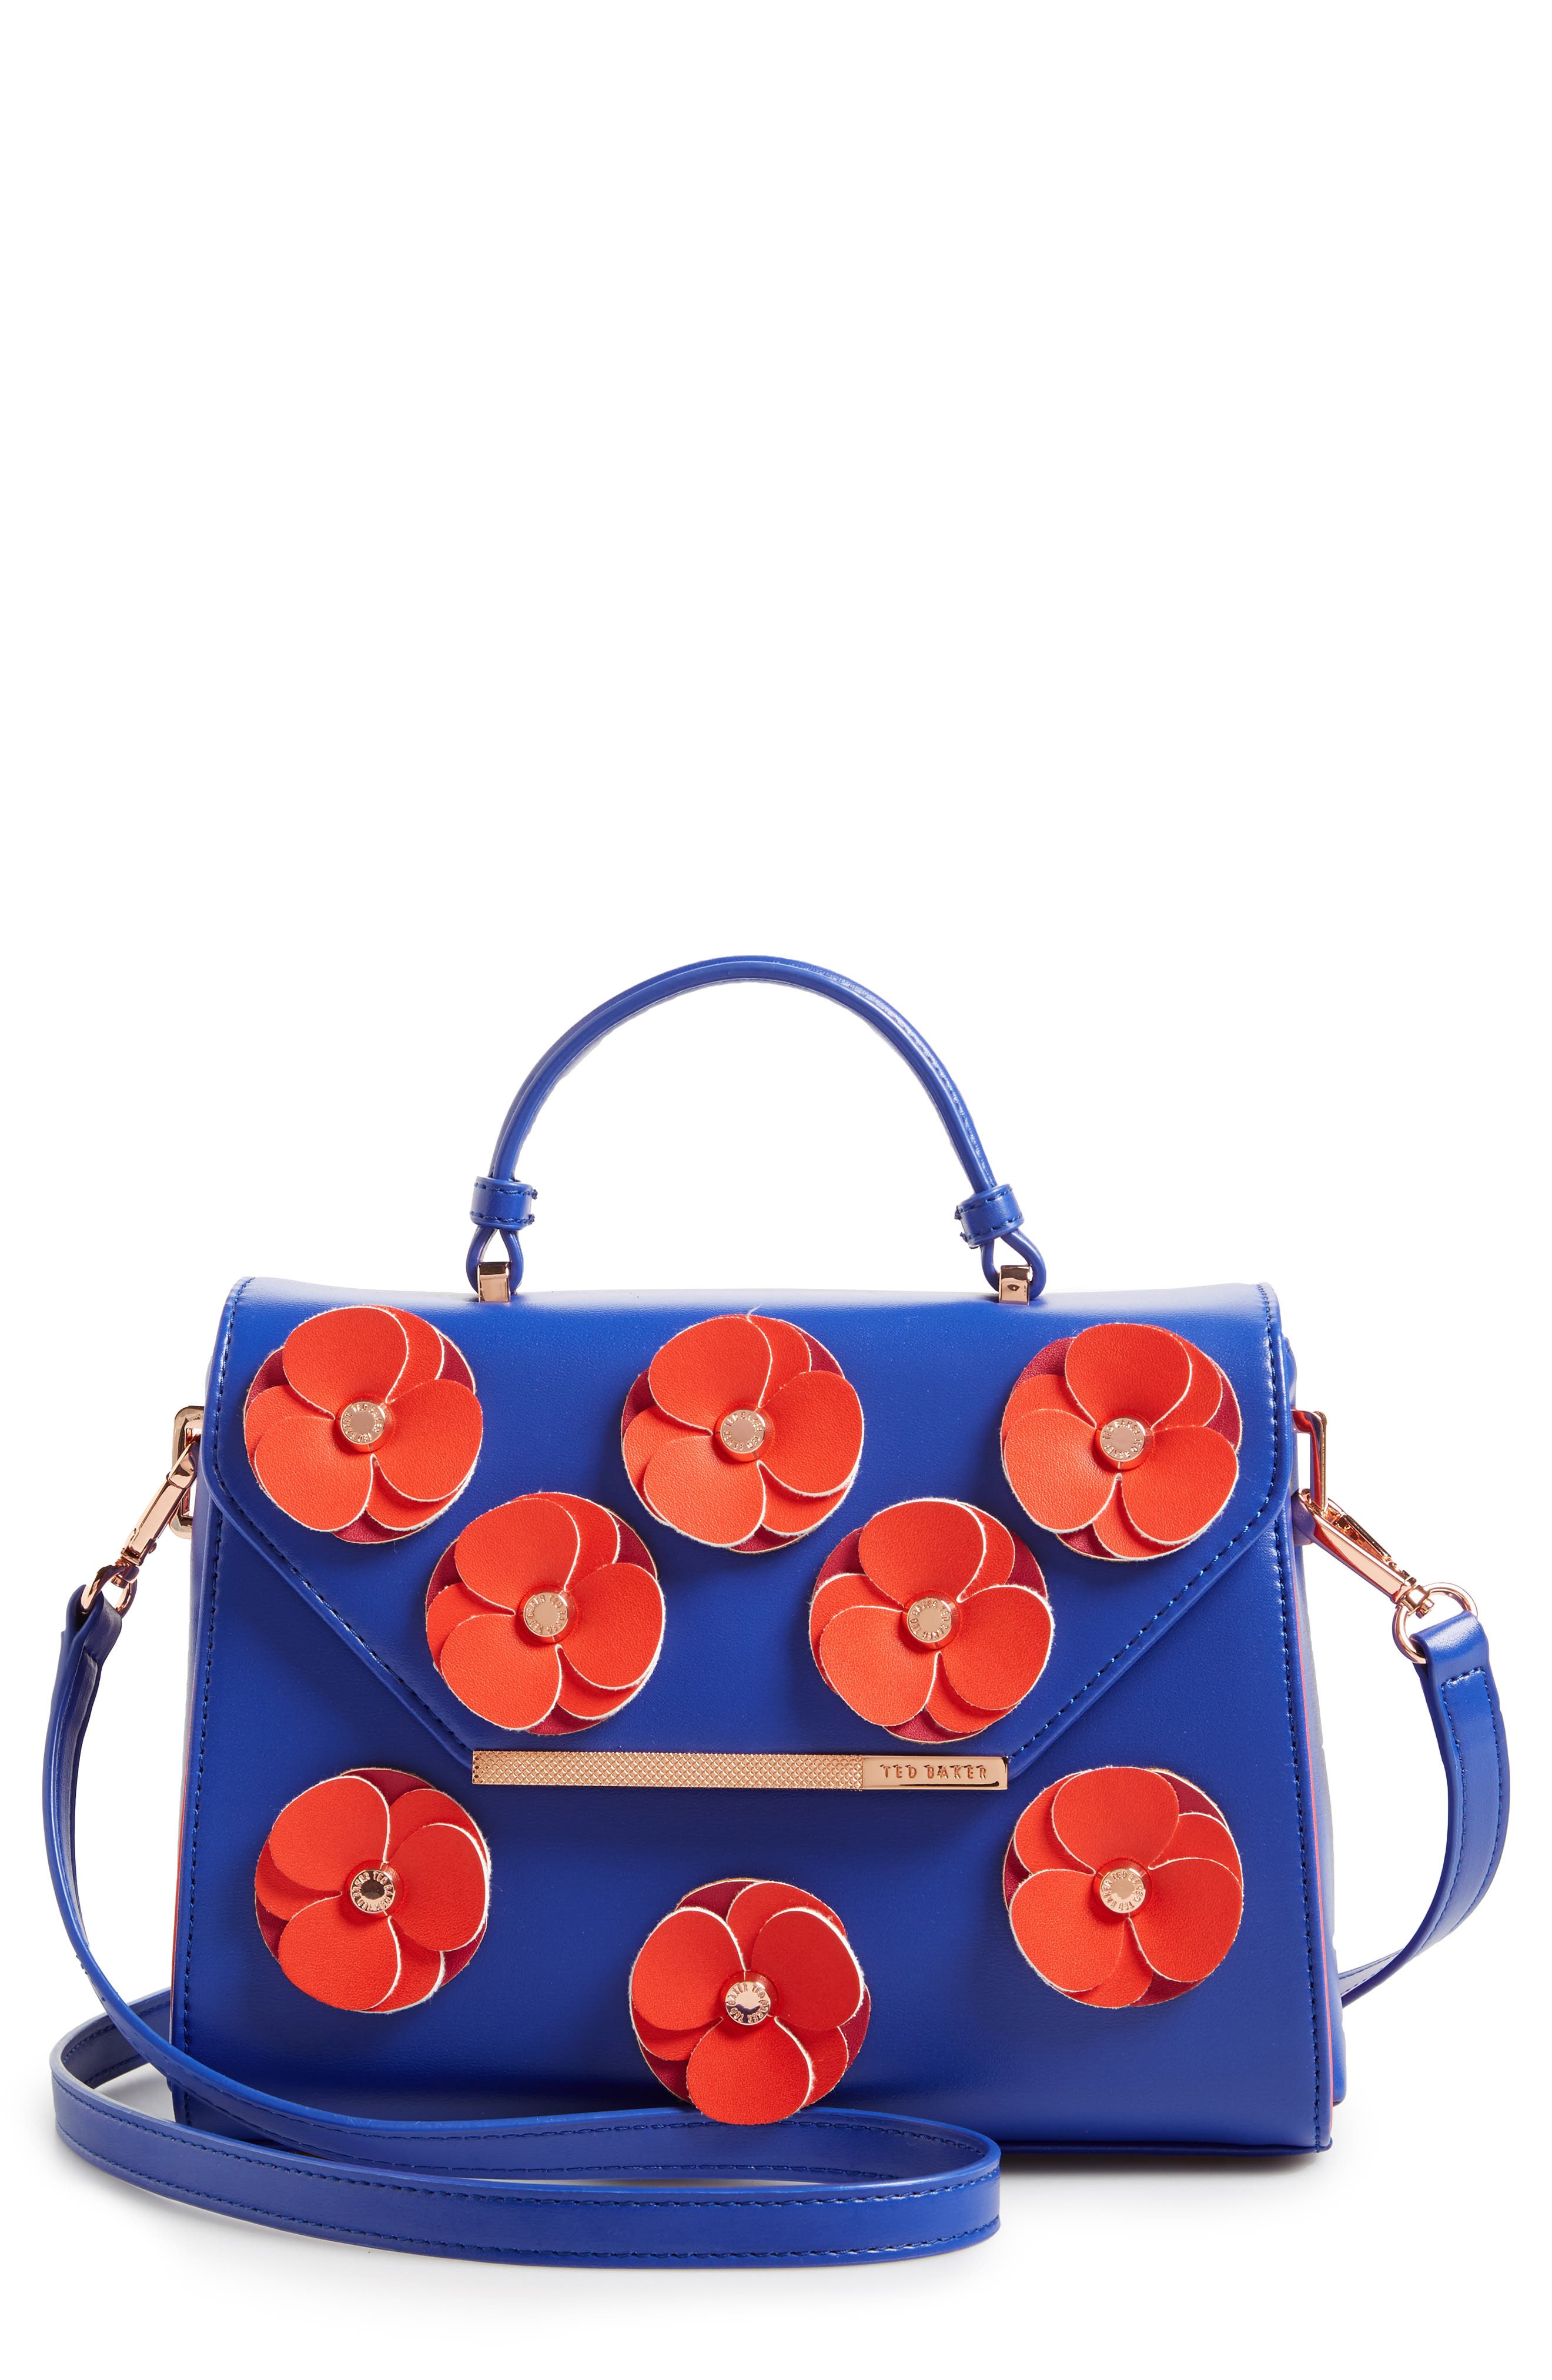 Main Image - Ted Baker London Daisii Appliqué Faux Leather Top Handle Satchel